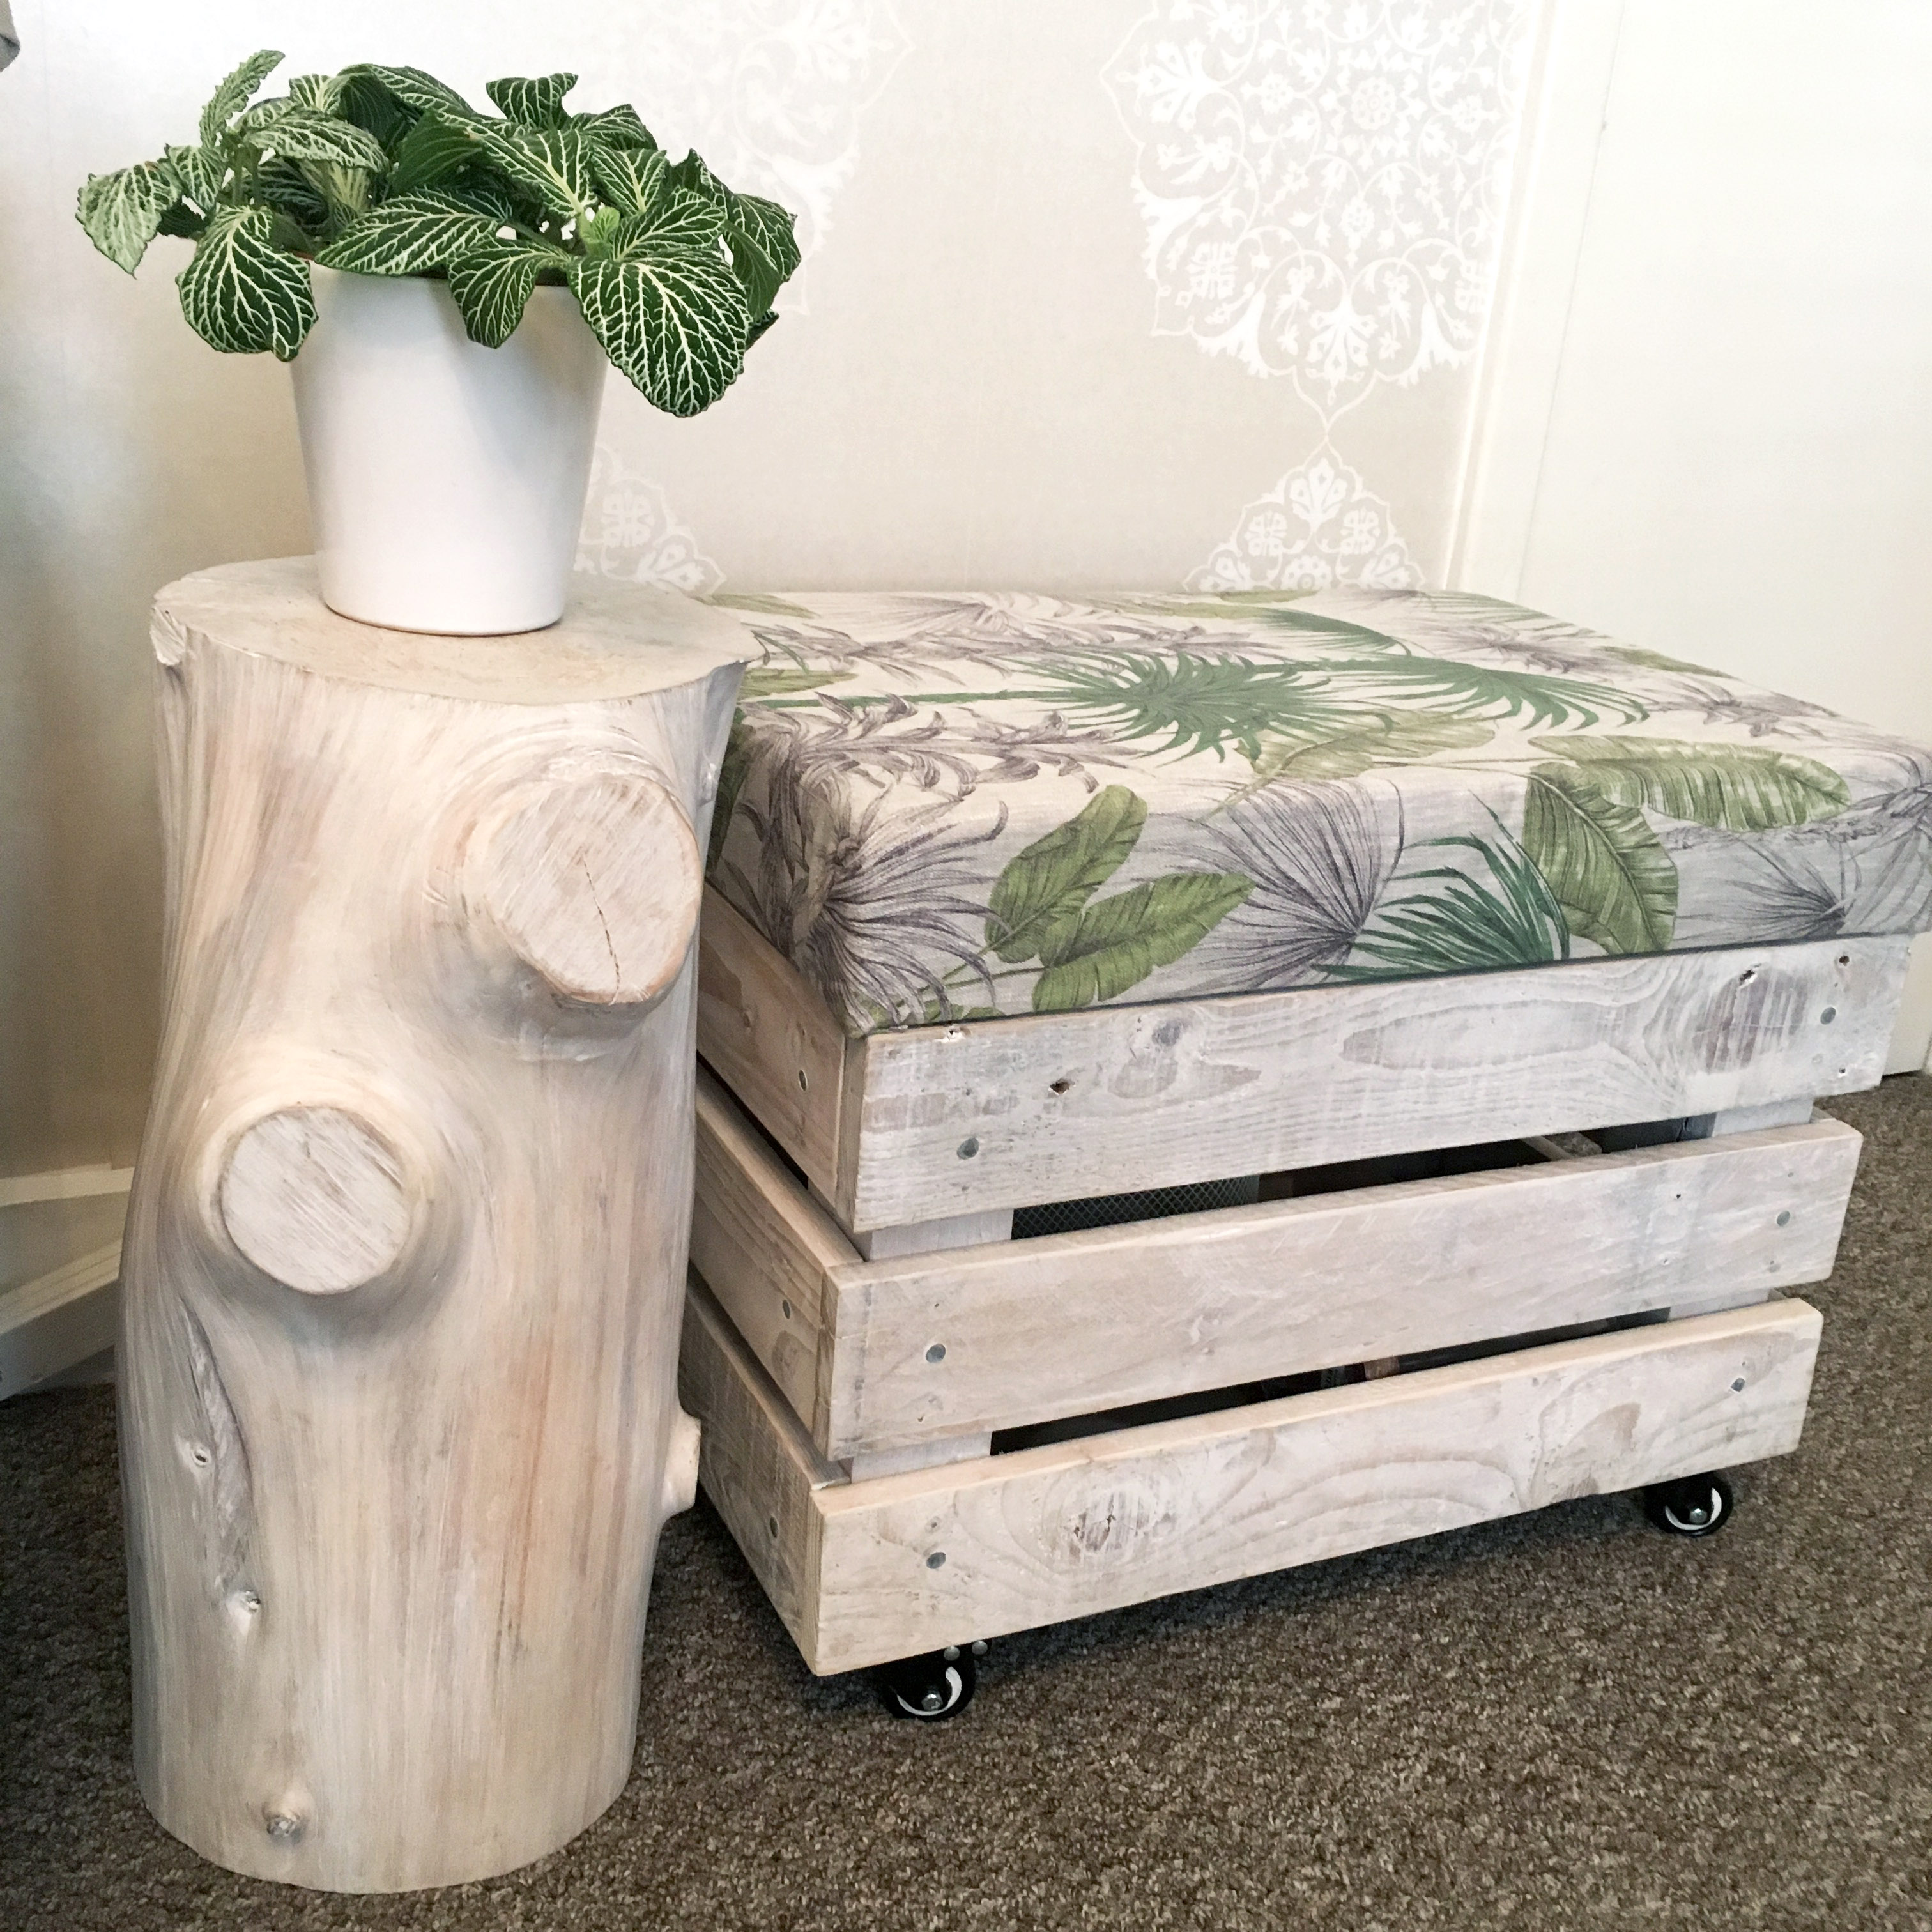 Reclaimed crate seat storage